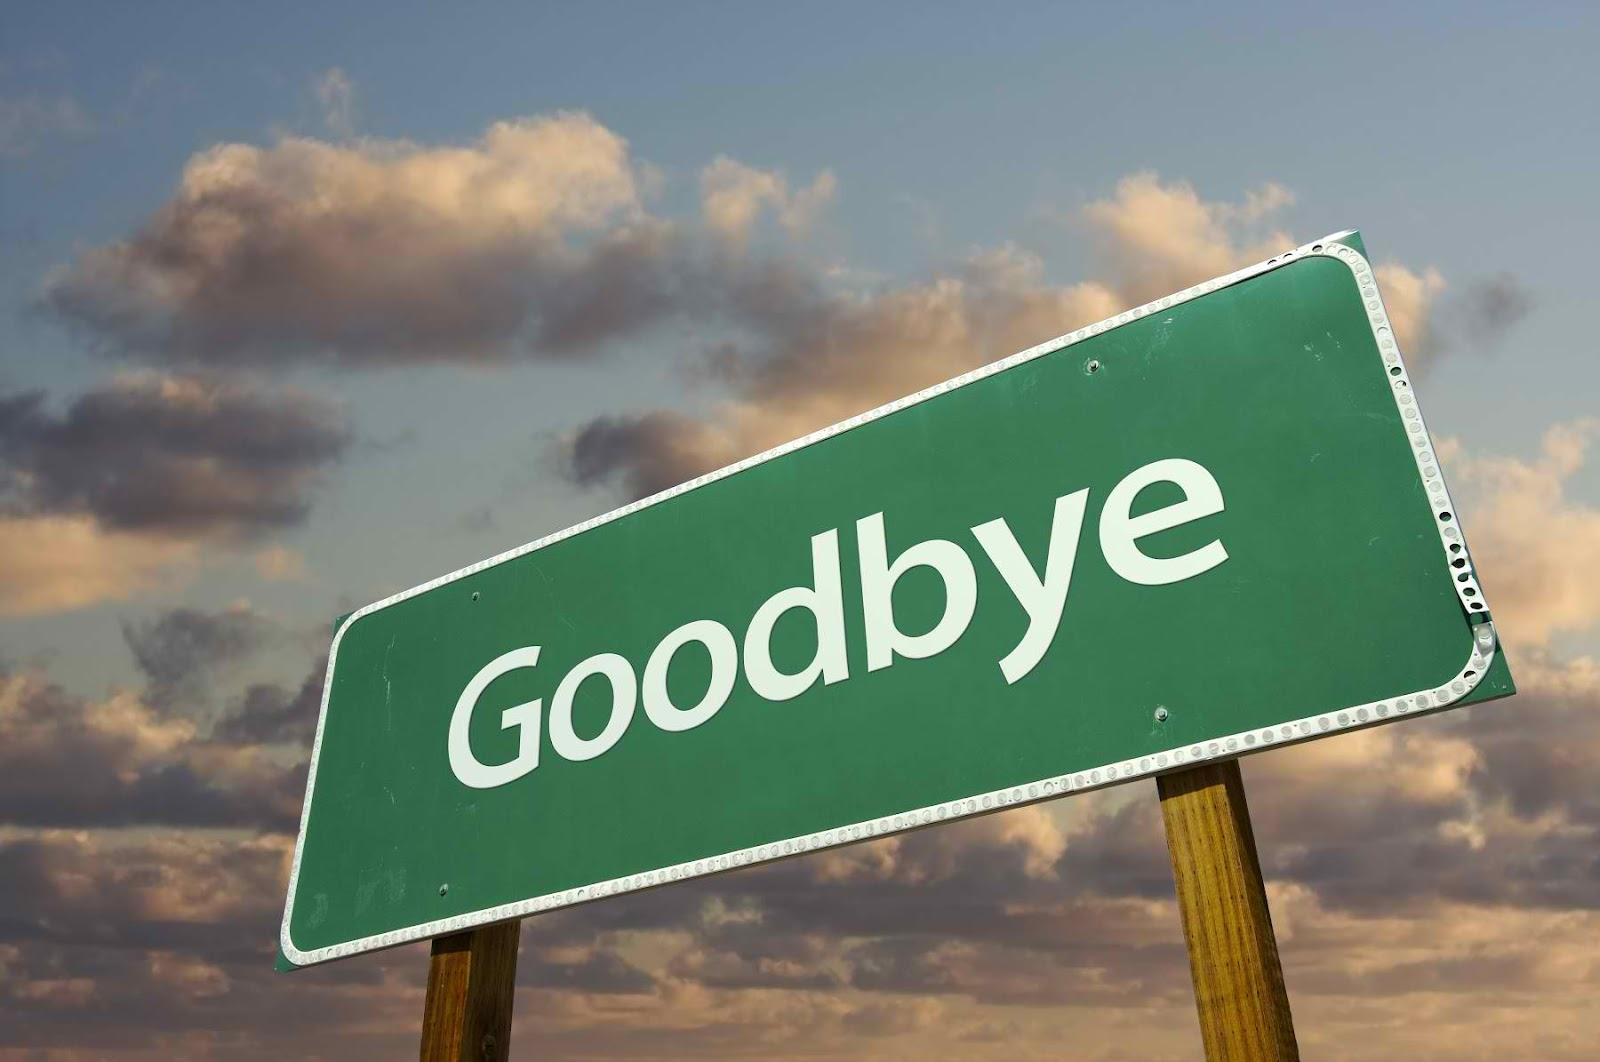 Is This Really Goodbye?! [Entry 21]